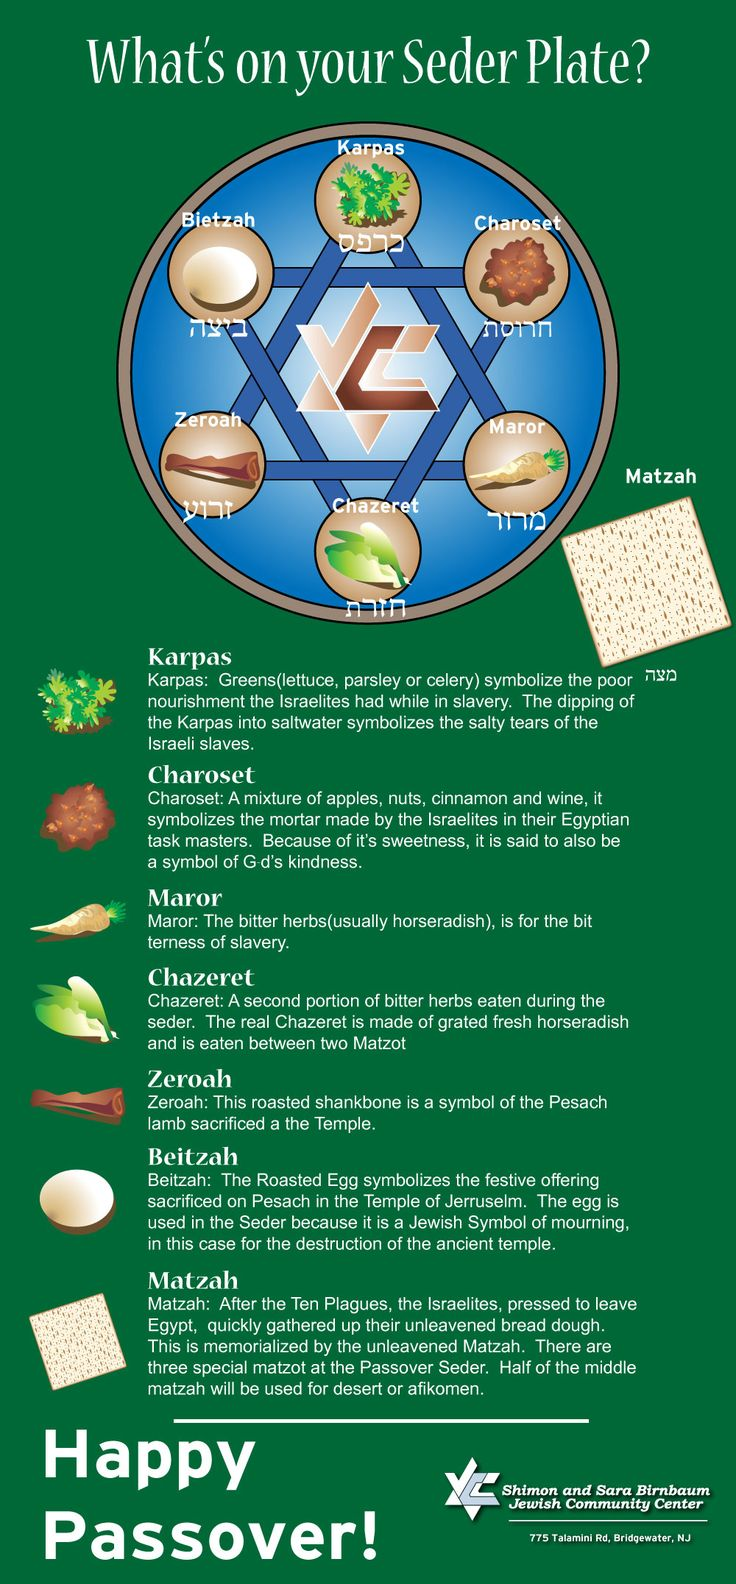 Chag Sameach! Happy Passover to all celebrating. Here is an infographic to help famiiarize yourselves with what goes on the sedar plate.  http://www.refugemarketing.com